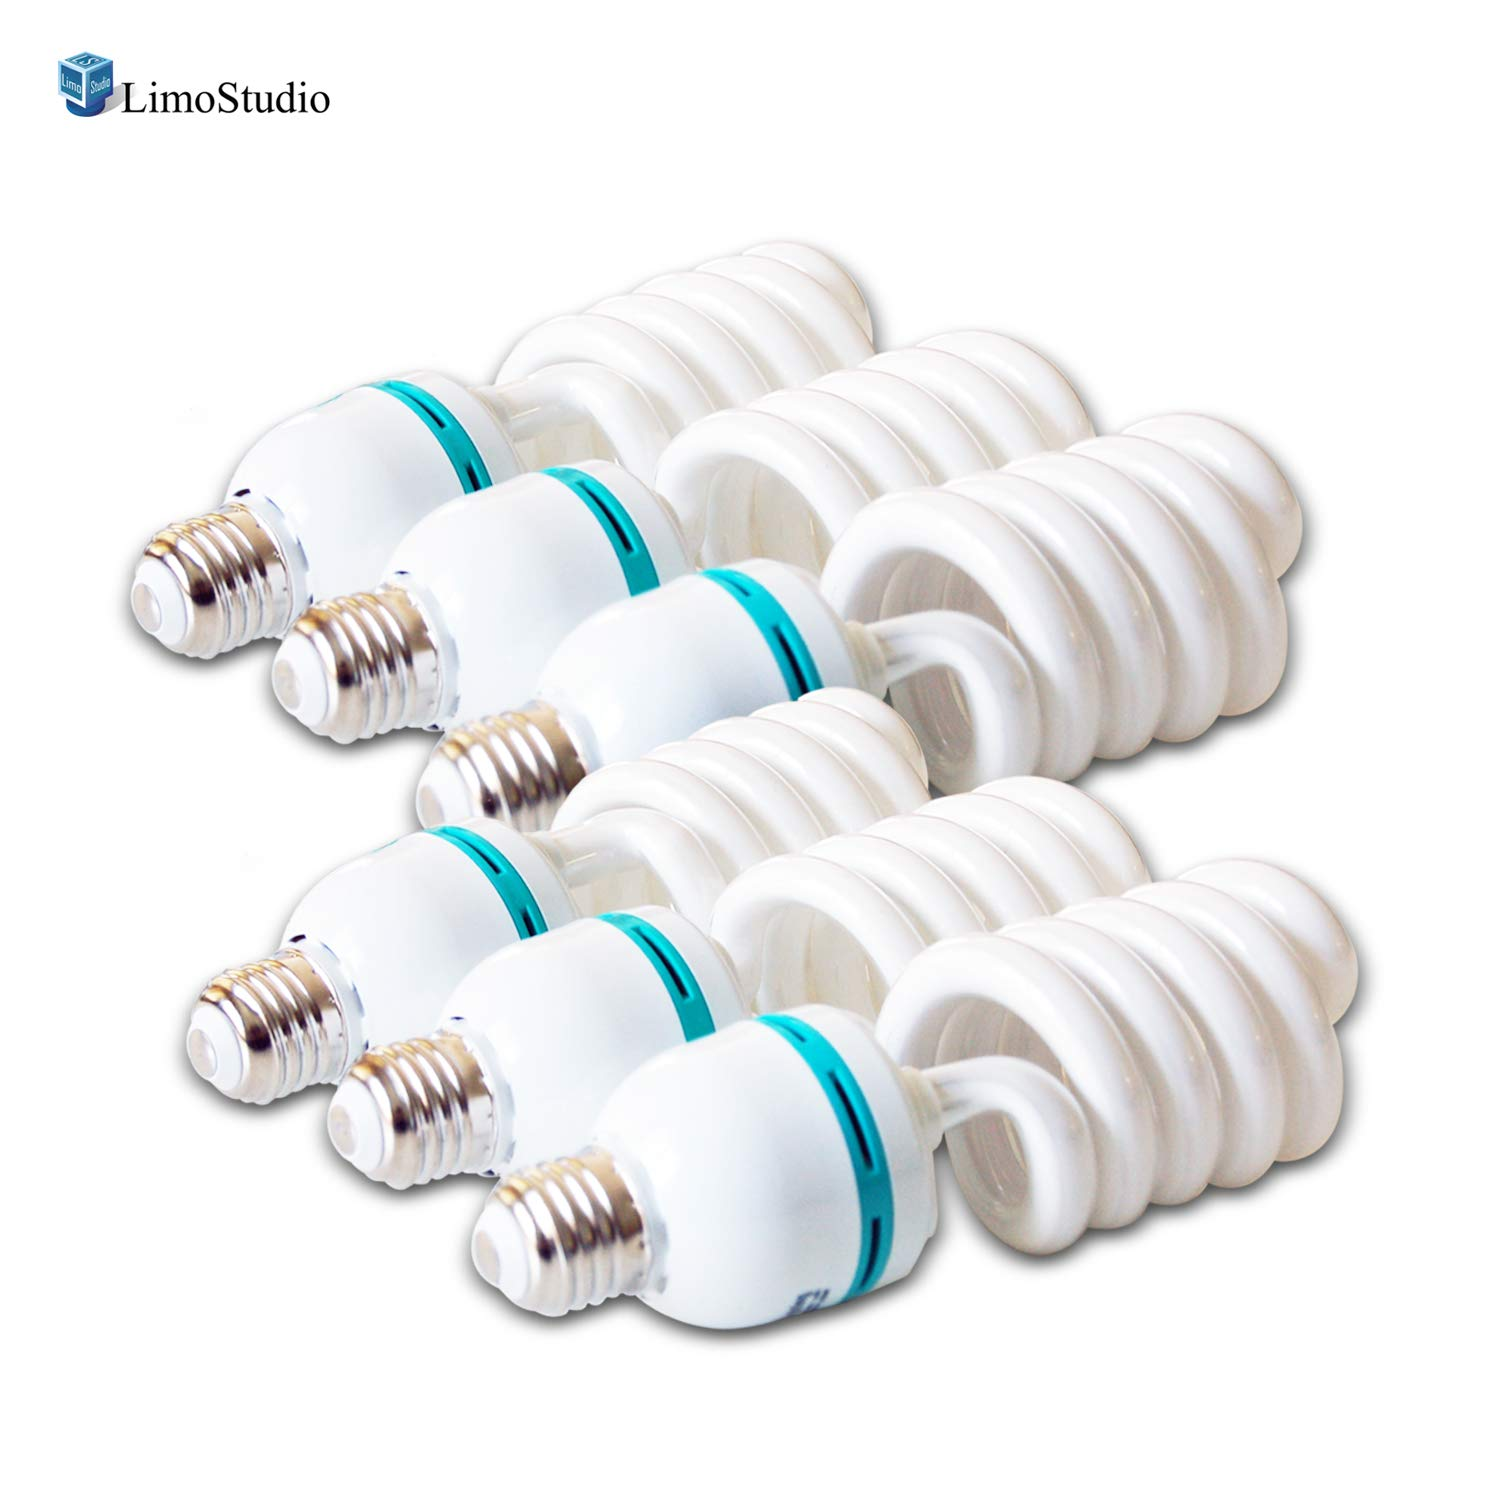 LimoStudio [6-Pack] 45W Full Spectrum Spiral Photo Light Bulb, Energy Saving 6500K Pure White Daylight Balanced CFL Light for Photography and Video, AGG2707